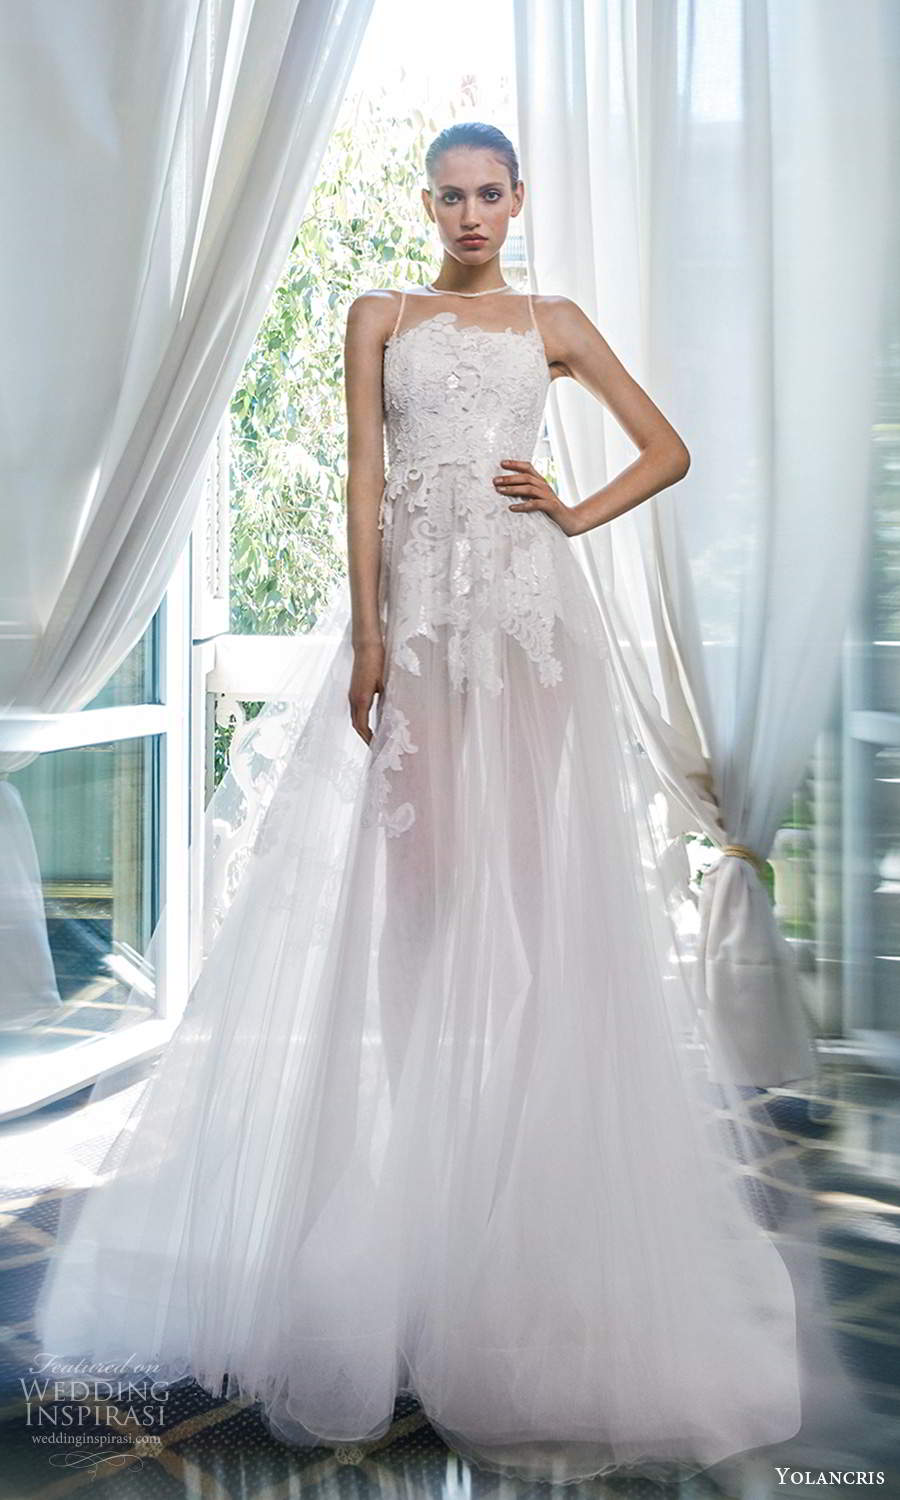 yolancris 2020 bridal couture sleeveless illusion strap sheer jewel neckline heavily embellished bodice a line ball gown wedding dress chapel train (8) mv